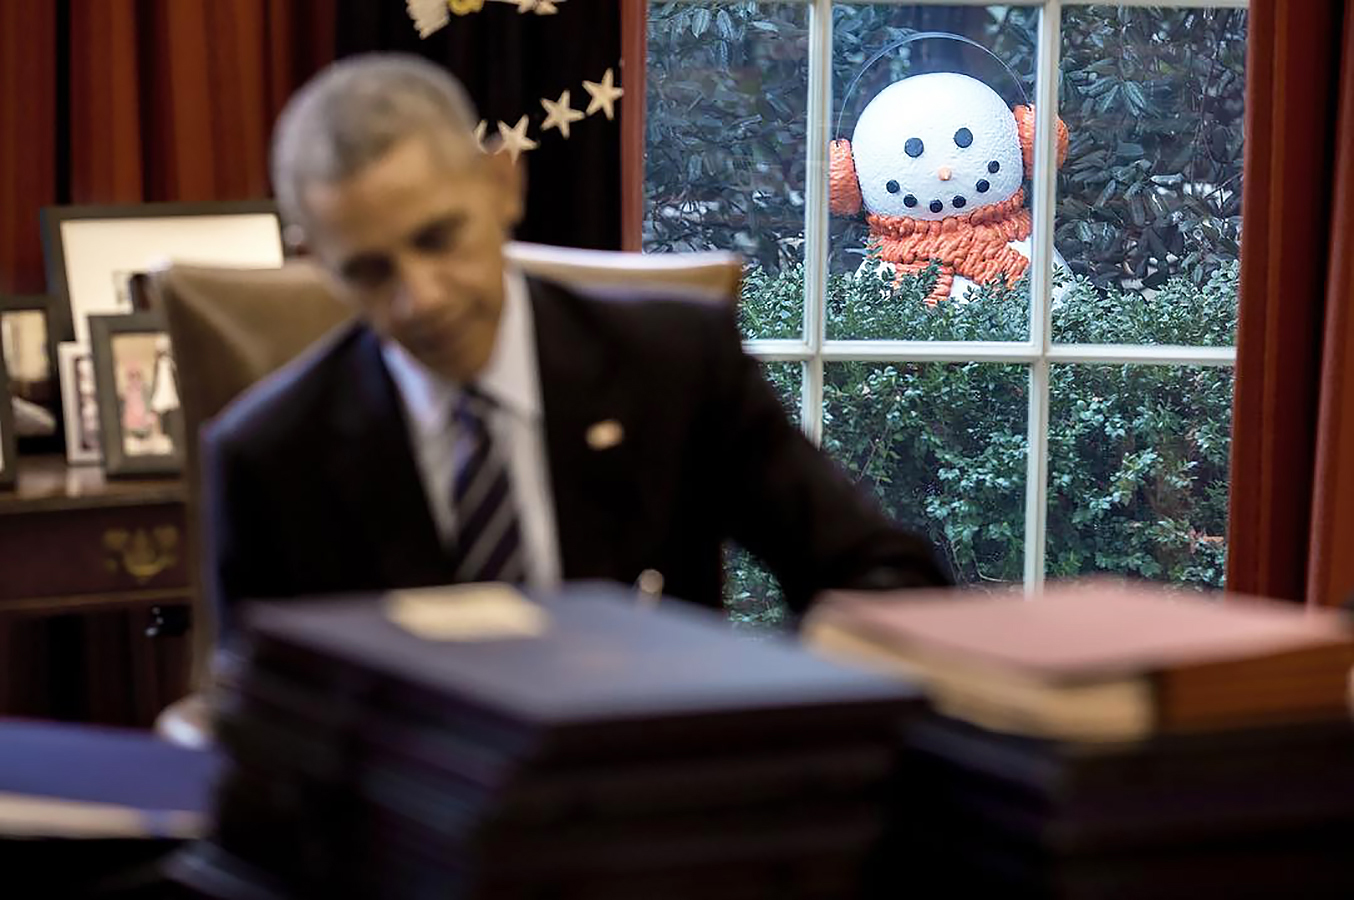 <p>Creepy Snowmen Pranks President Obama?</p>